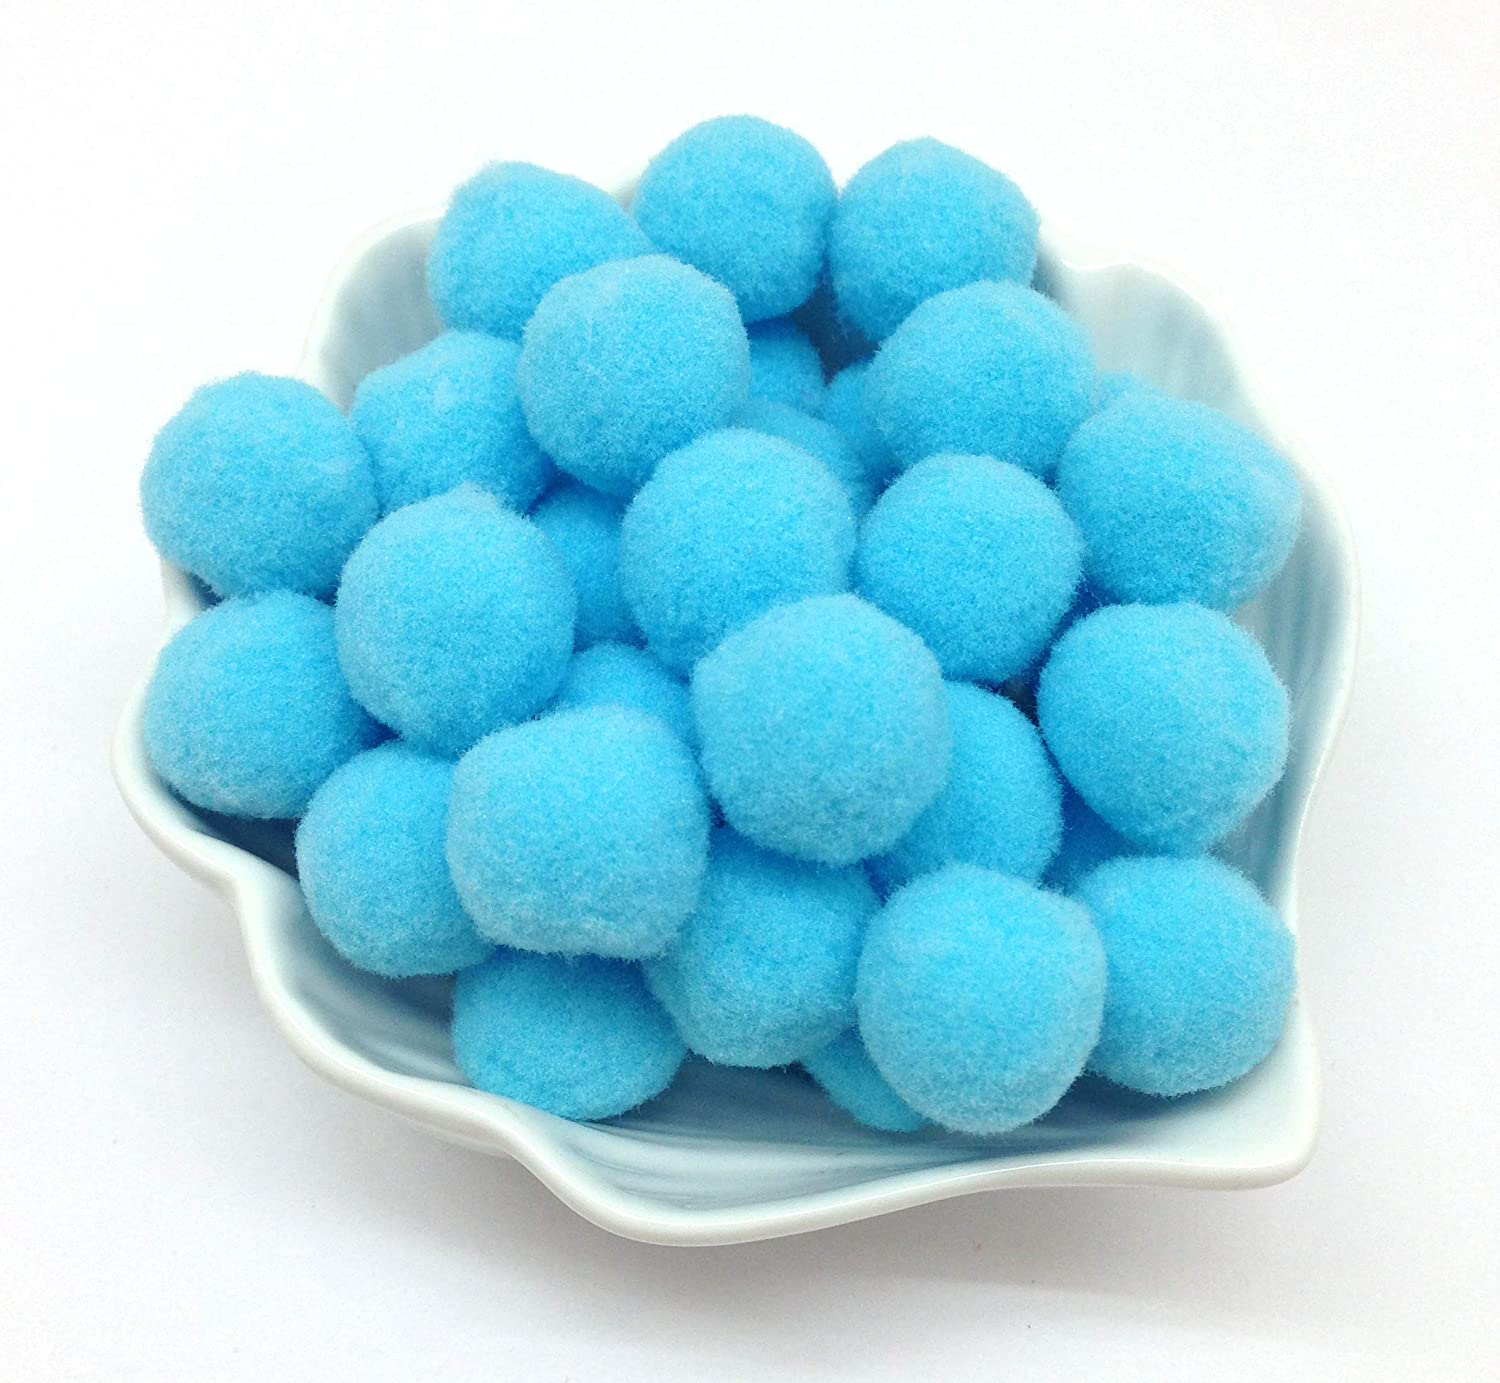 Khaki PEPPERLONELY 100PC 20mm Fluffy Craft Pom Pom Balls for DIY Creative Crafts Decorations Kids Craft Project Home Party Holiday Decorations